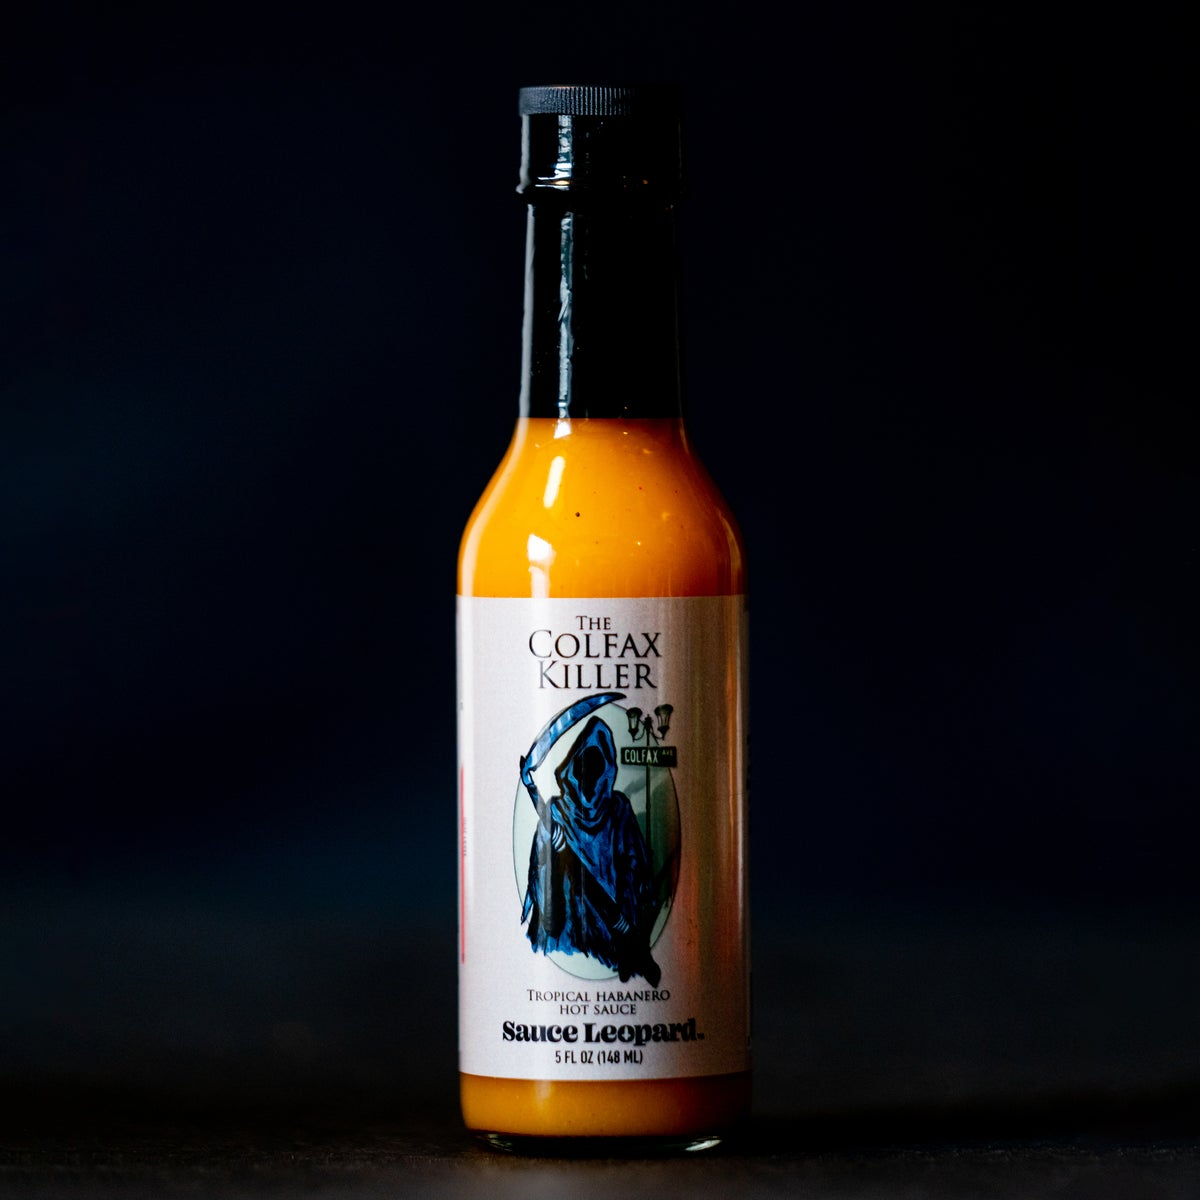 Image of The Colfax Killer - tropical habanero sauce